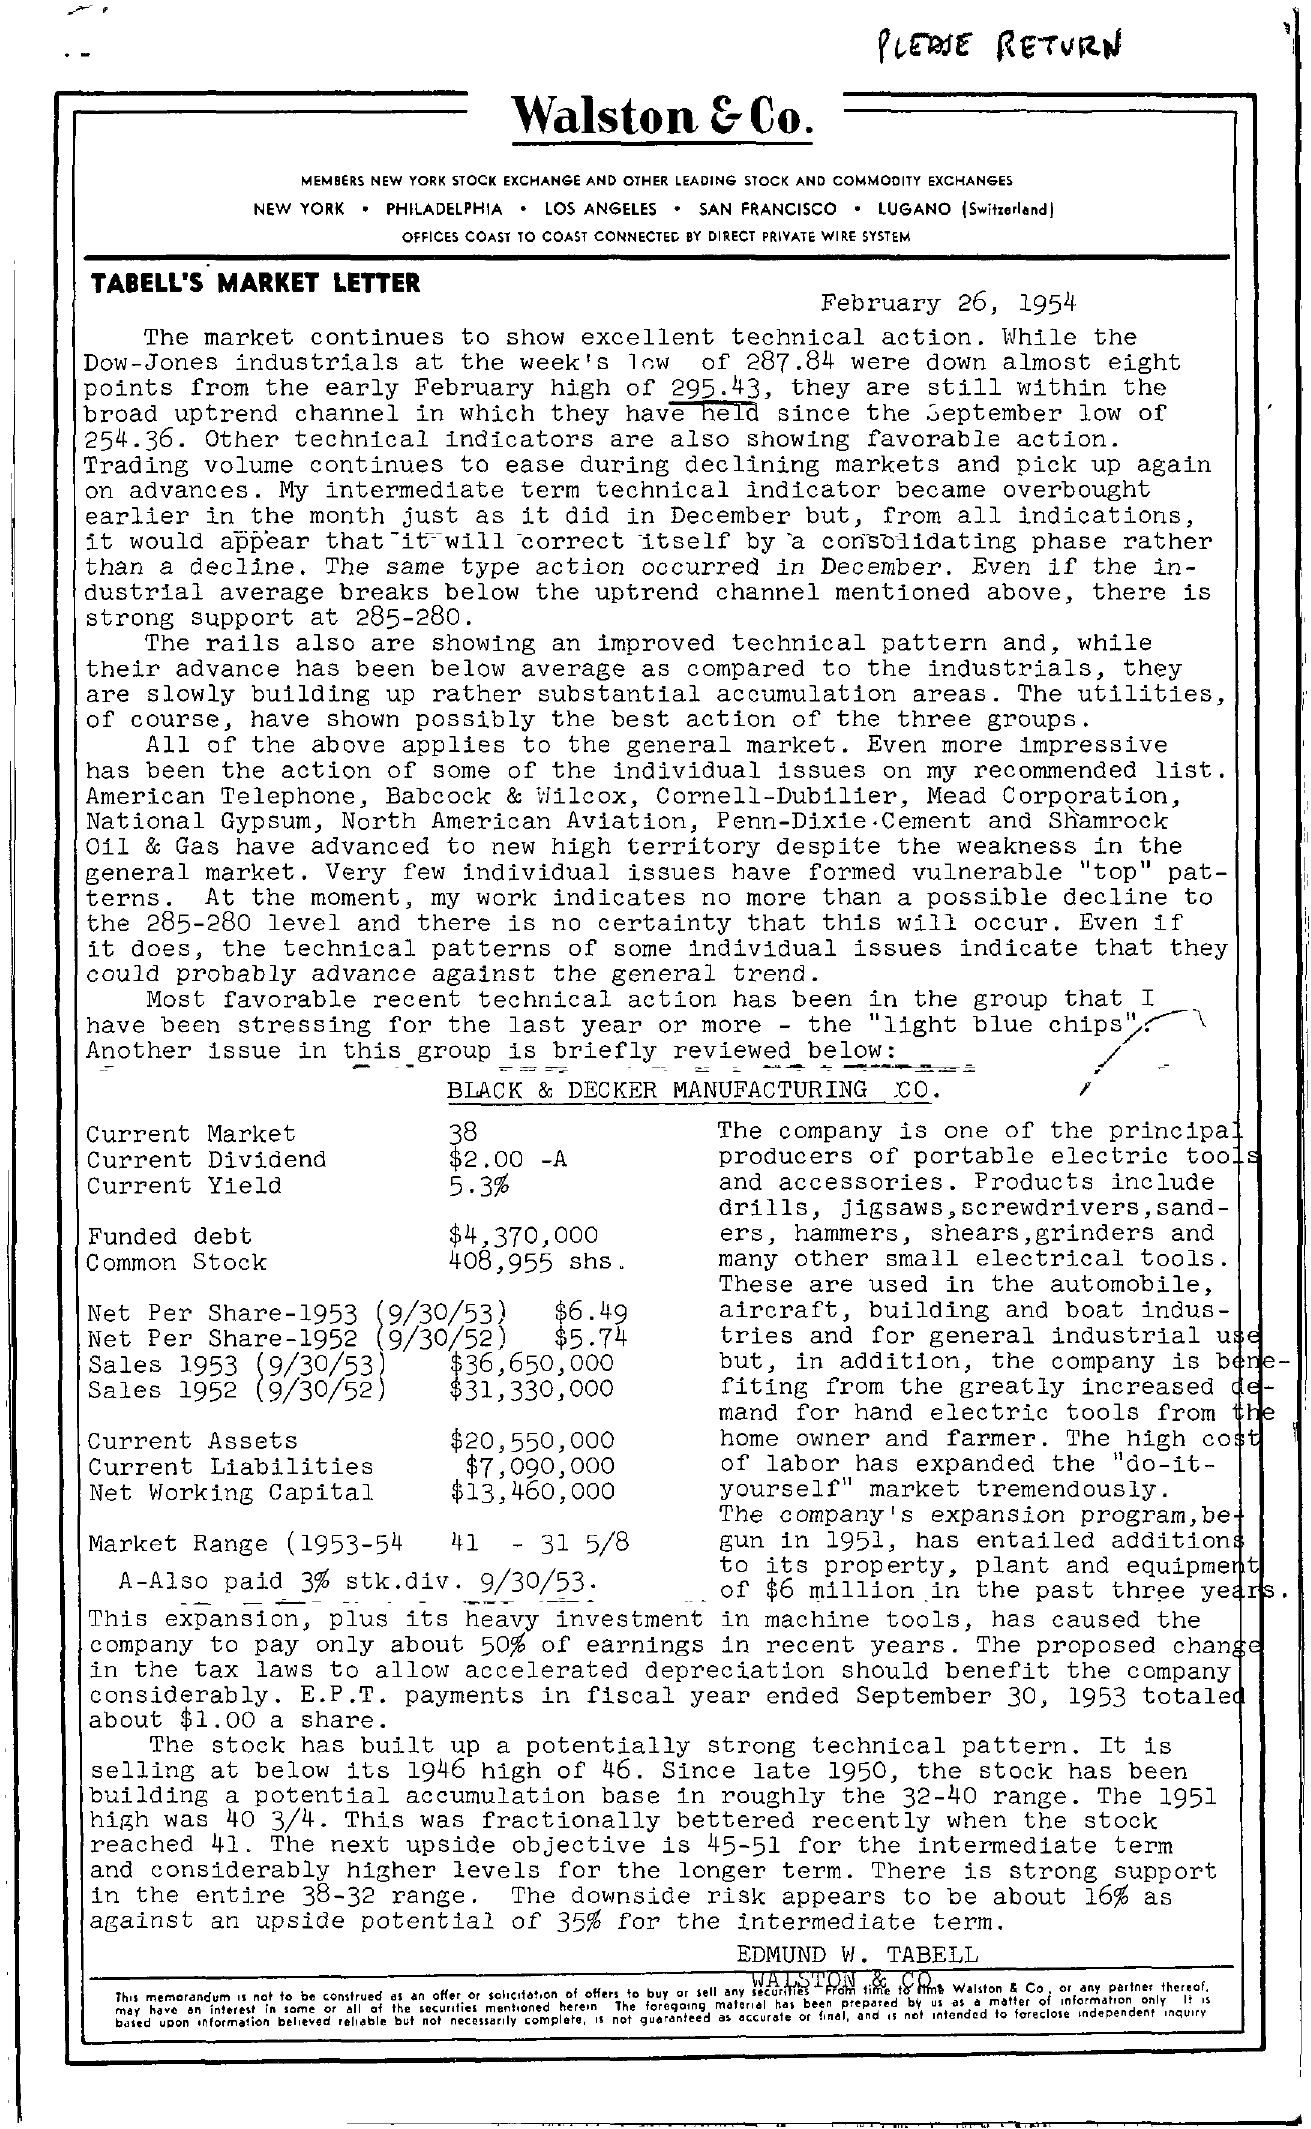 Tabell's Market Letter - February 26, 1954 page 1